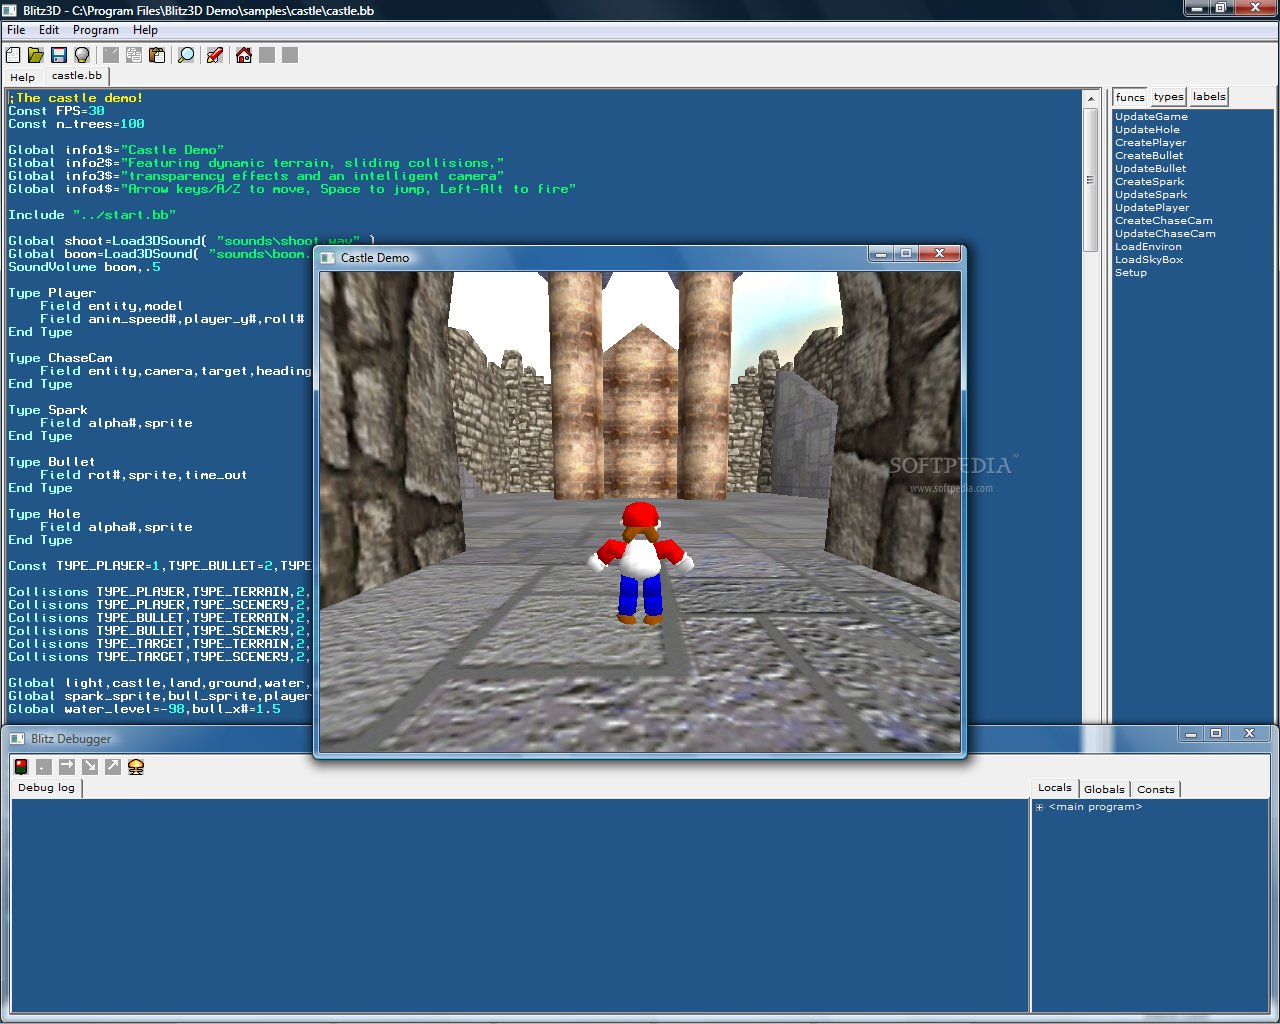 http://i1-games.softpedia-static.com/screenshots/Blitz3D-Demo_1.jpg